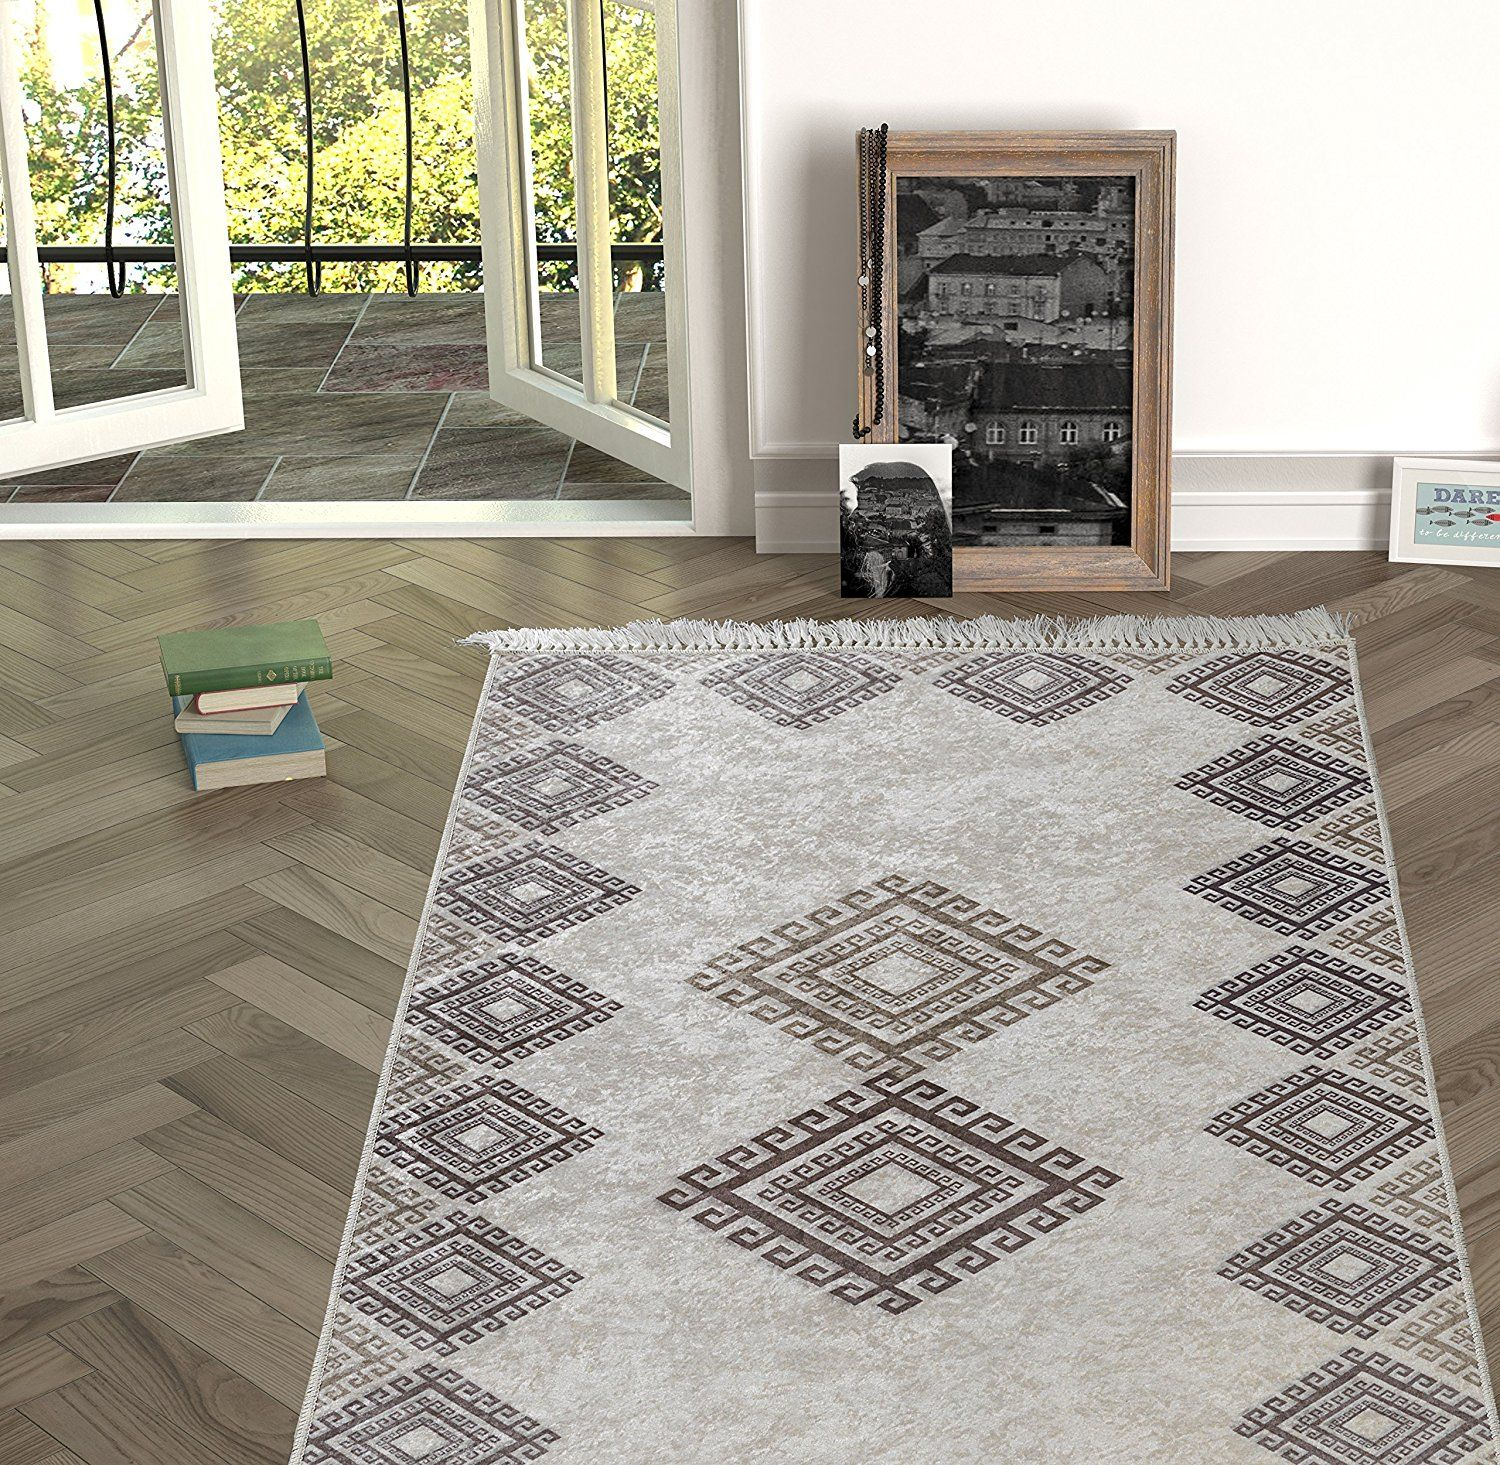 Area Rug With Non Skid Rubber Backing Decorative Modern Carpet For Living Dining Children S Rooms Bedroom Anti Slip Throw Runner F